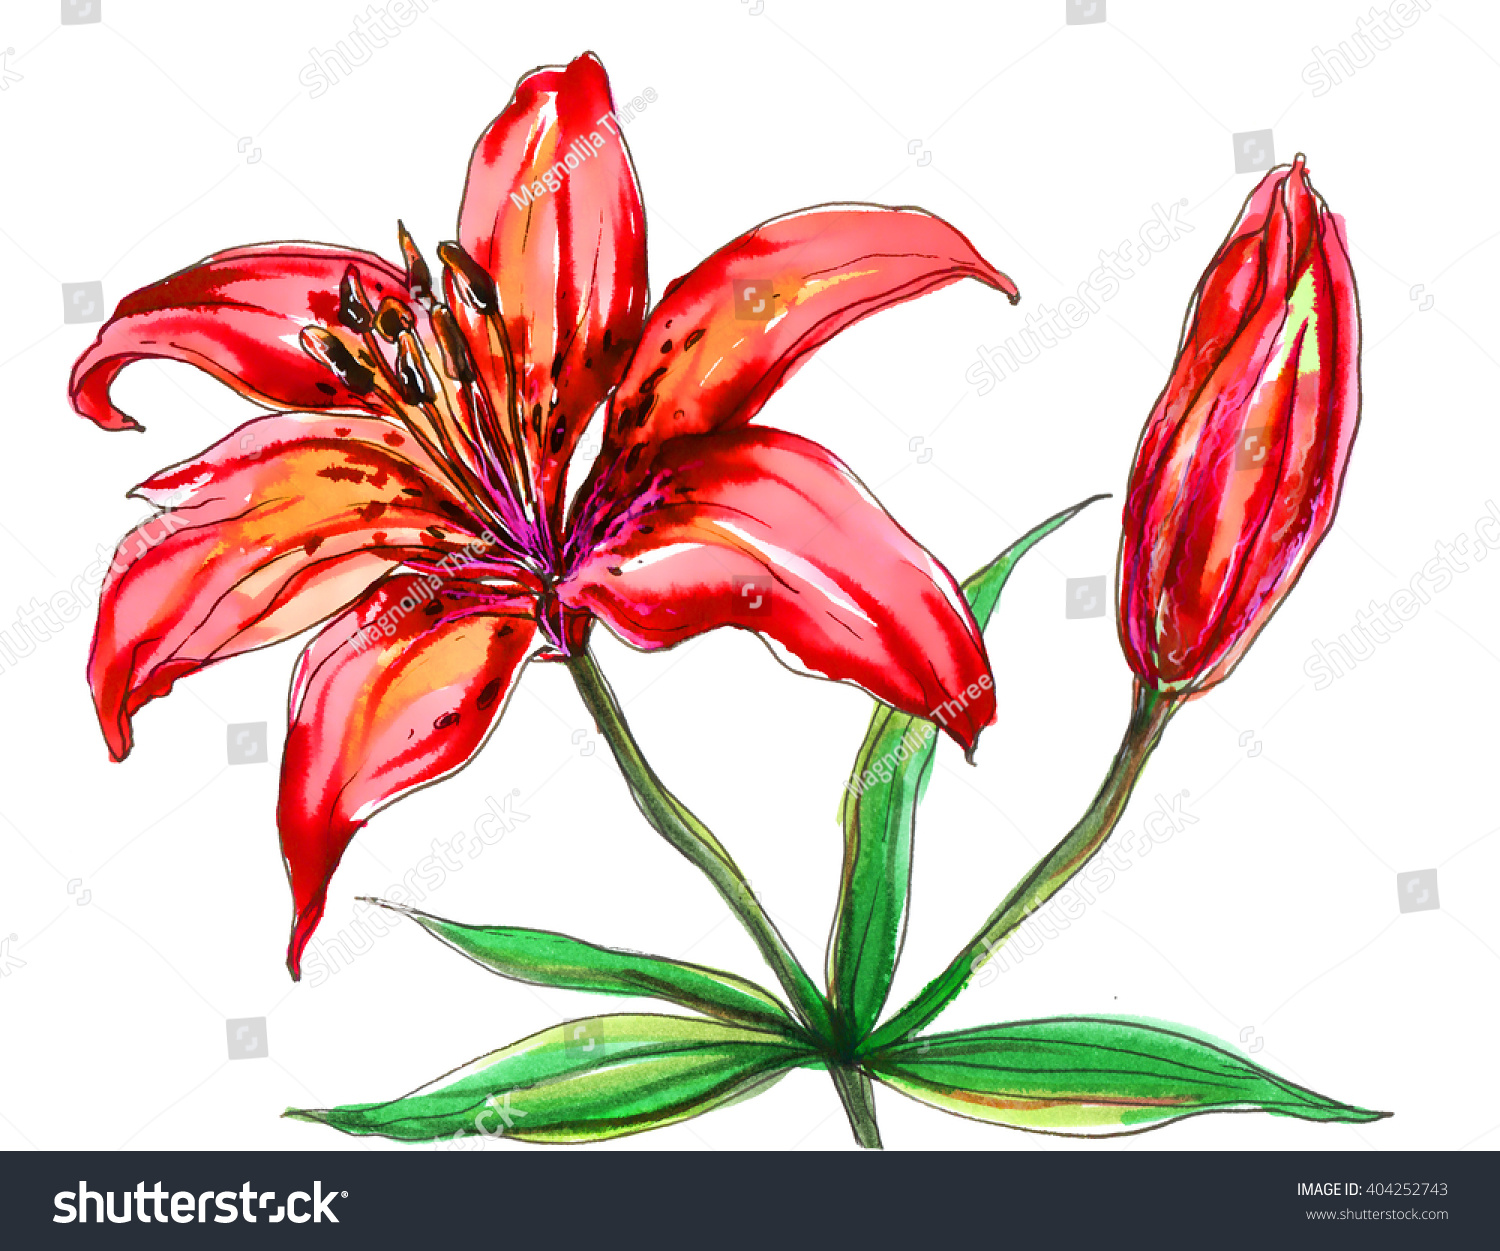 Red tiger lily flower blossom hand stock illustration 404252743 red tiger lily flower blossom hand drawn watercolor tropical flowers isolated on white background izmirmasajfo